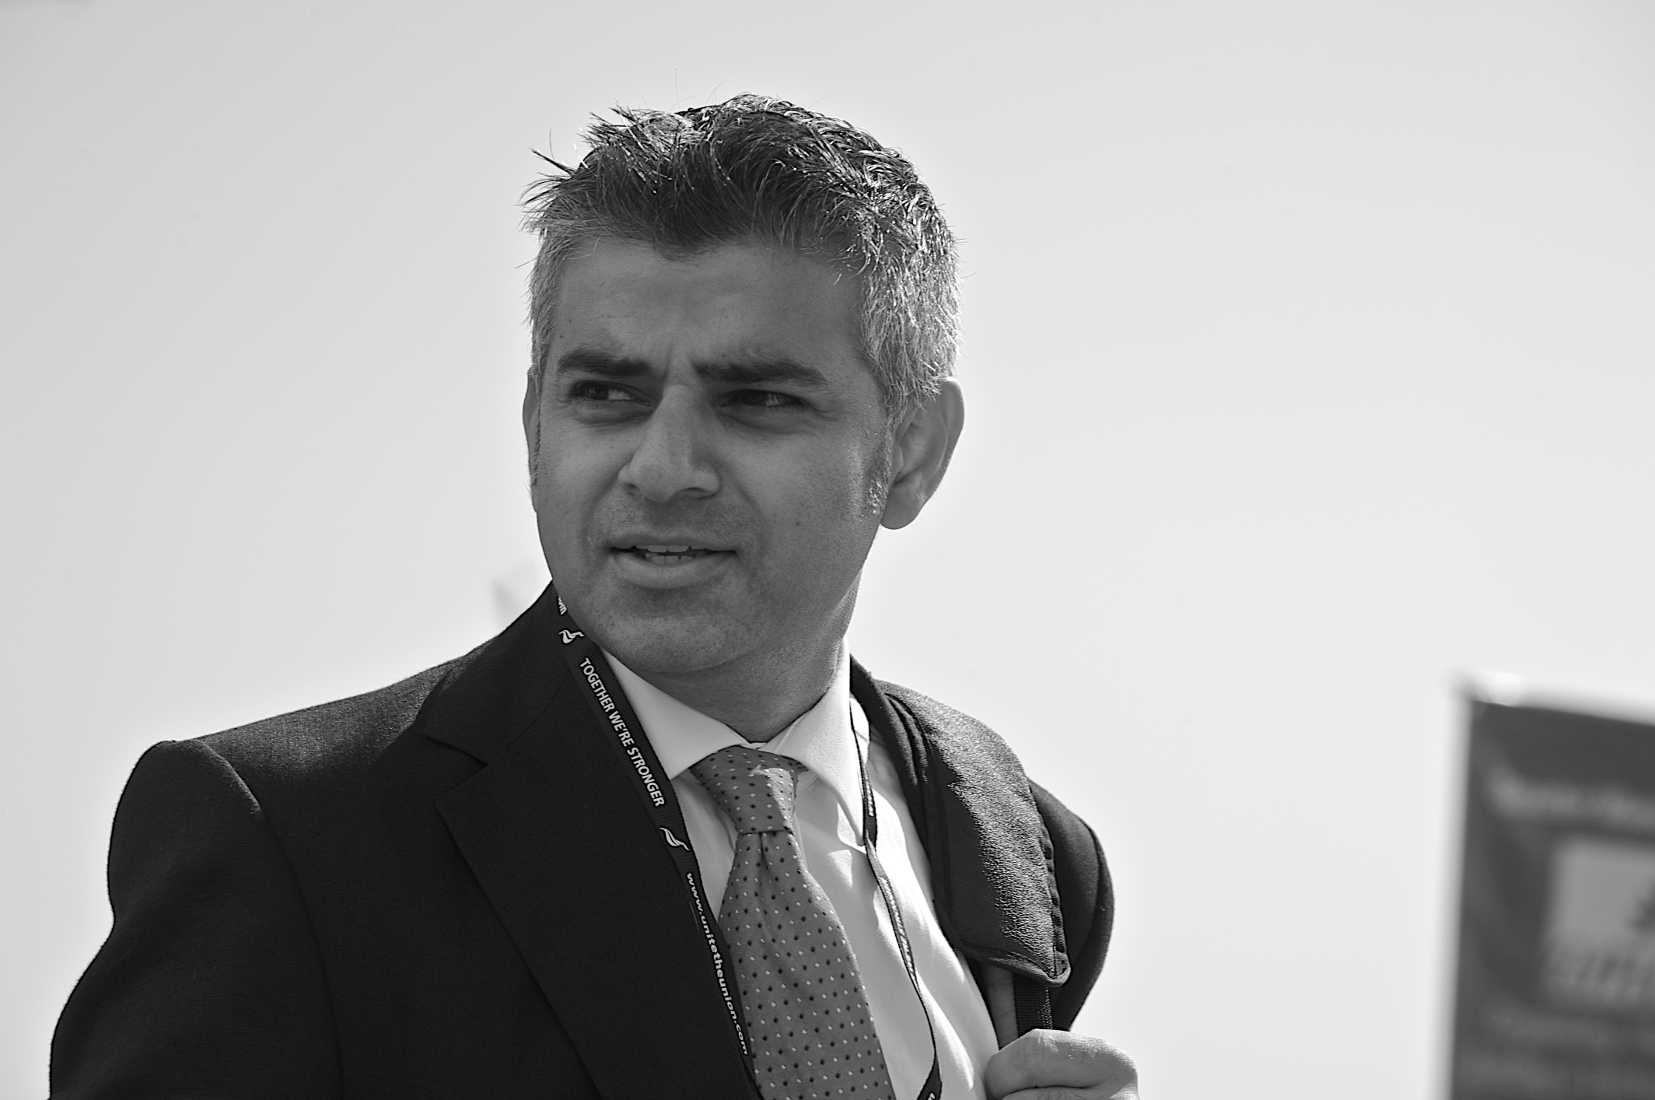 London's Gun Control Laws Didn't Work, So Mayor Moves to Knives